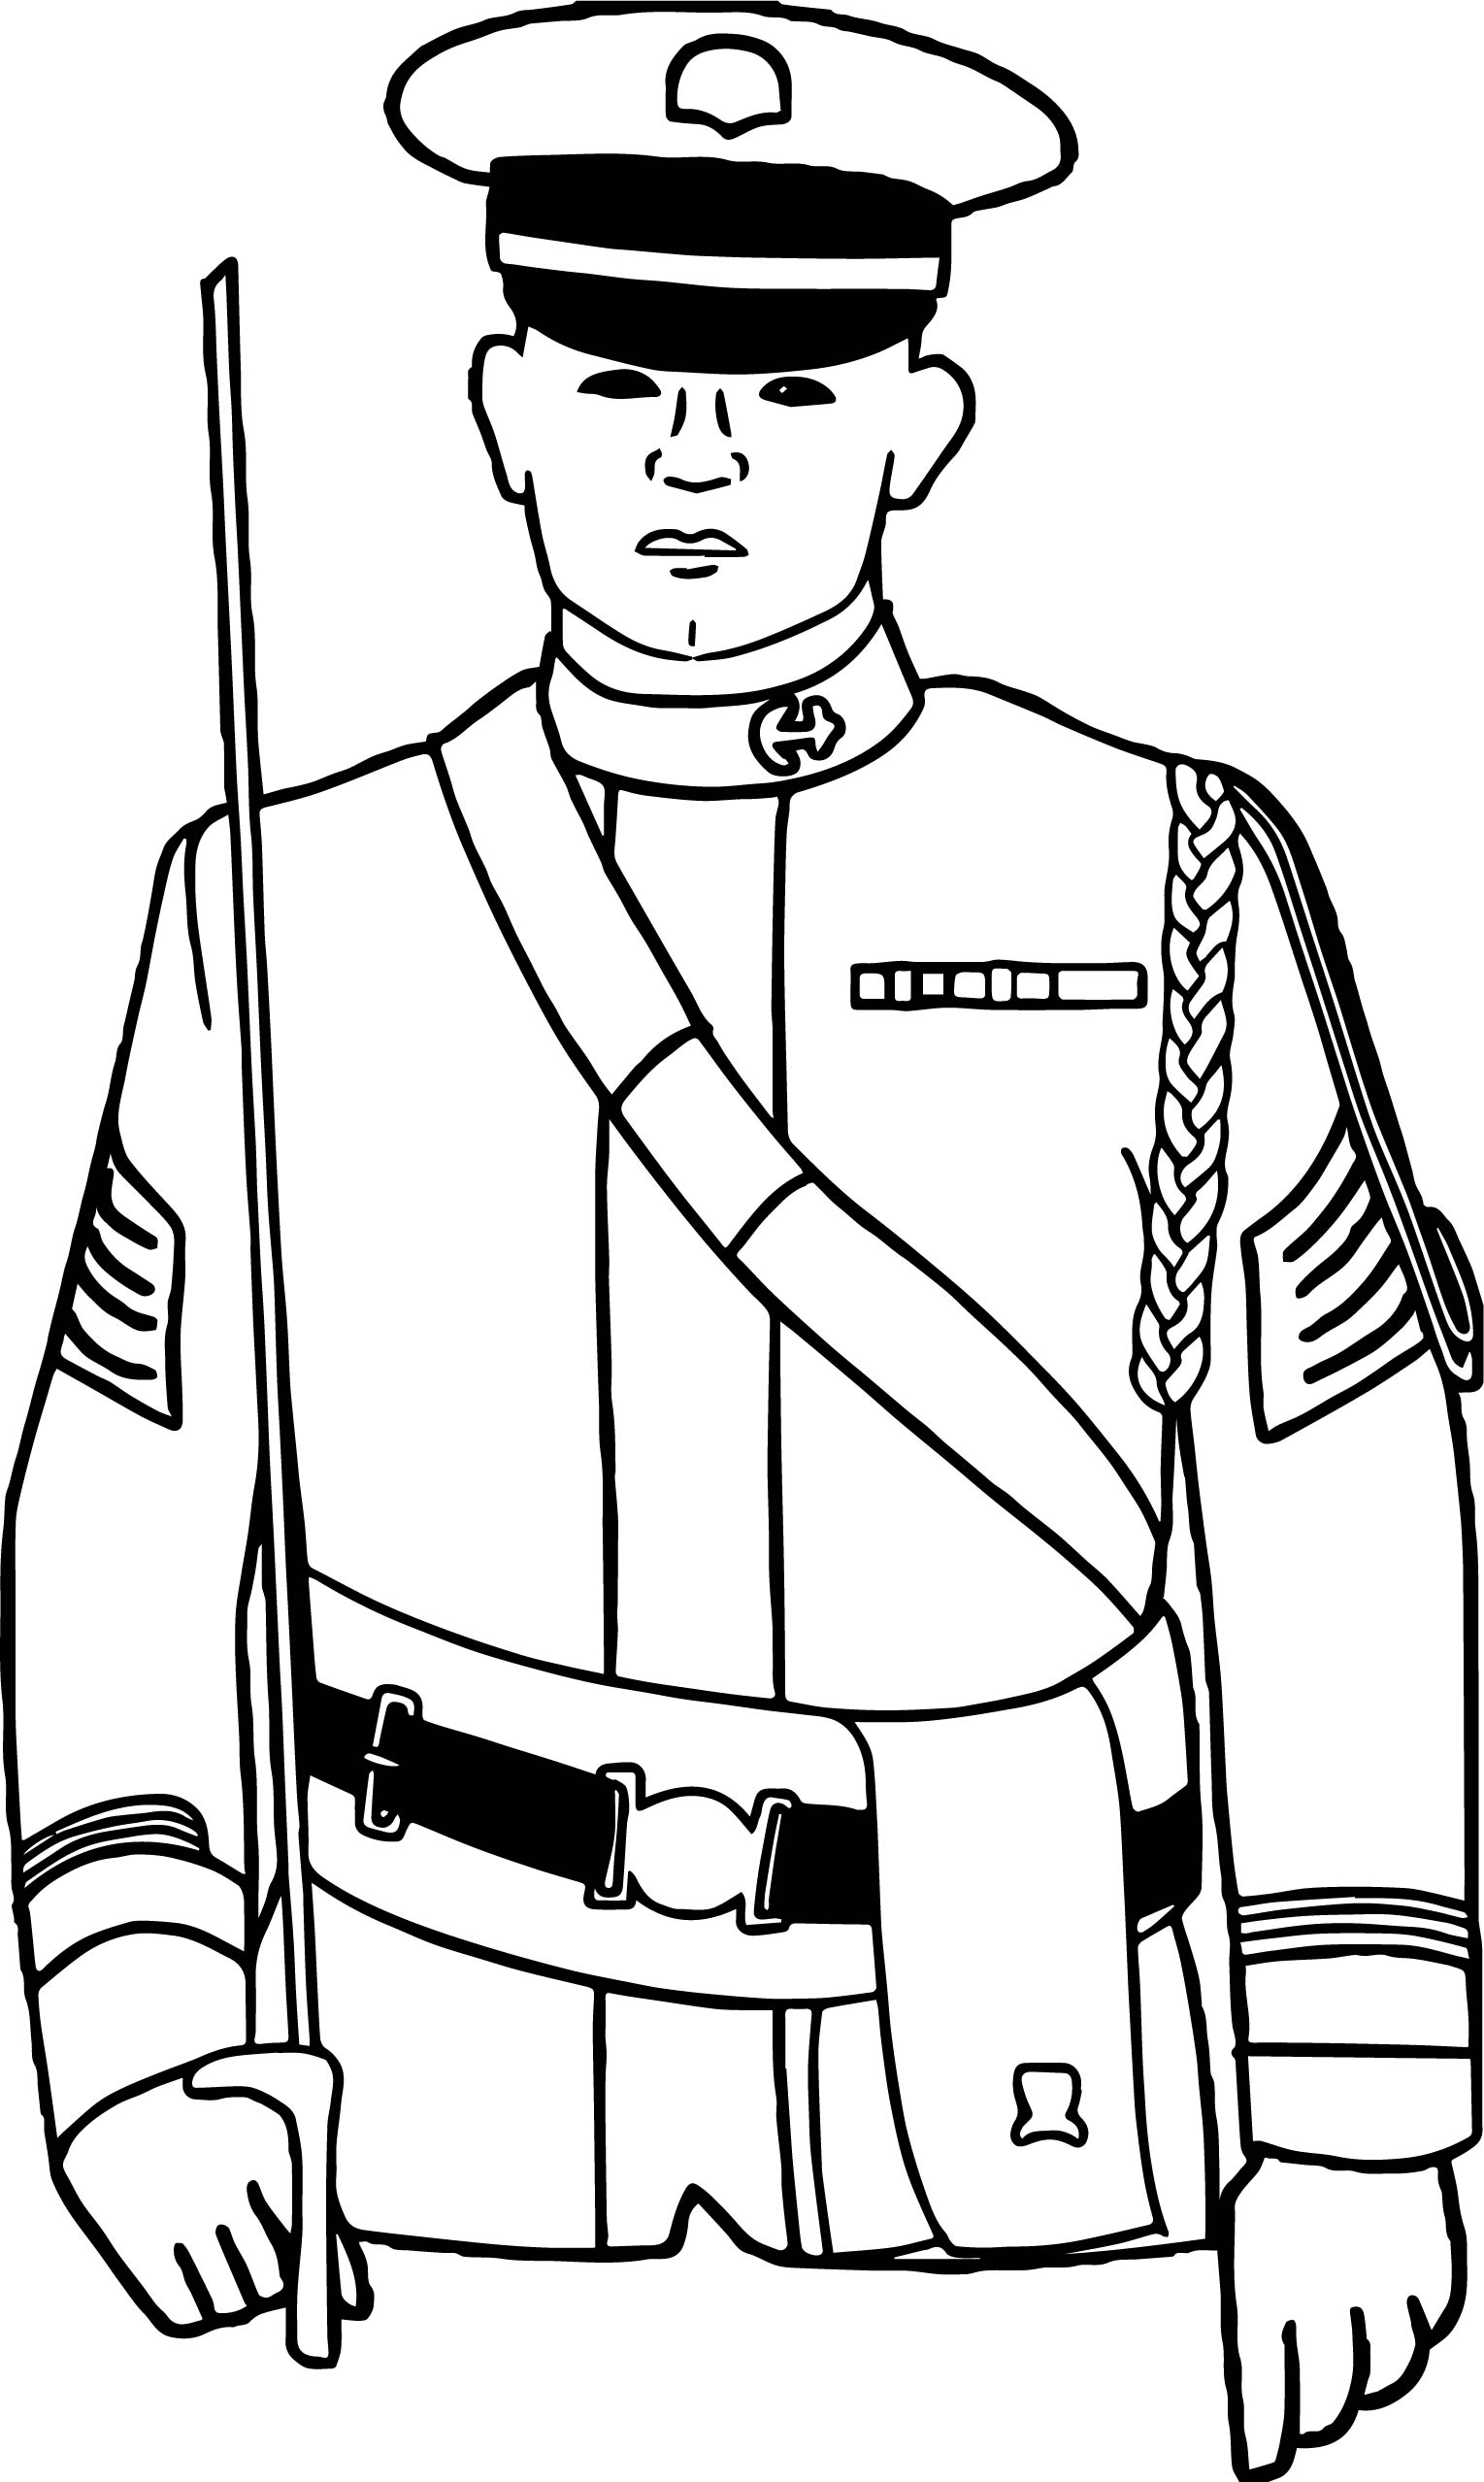 coloring pages of army soldiers free printable army coloring pages for kids cool2bkids of army pages soldiers coloring